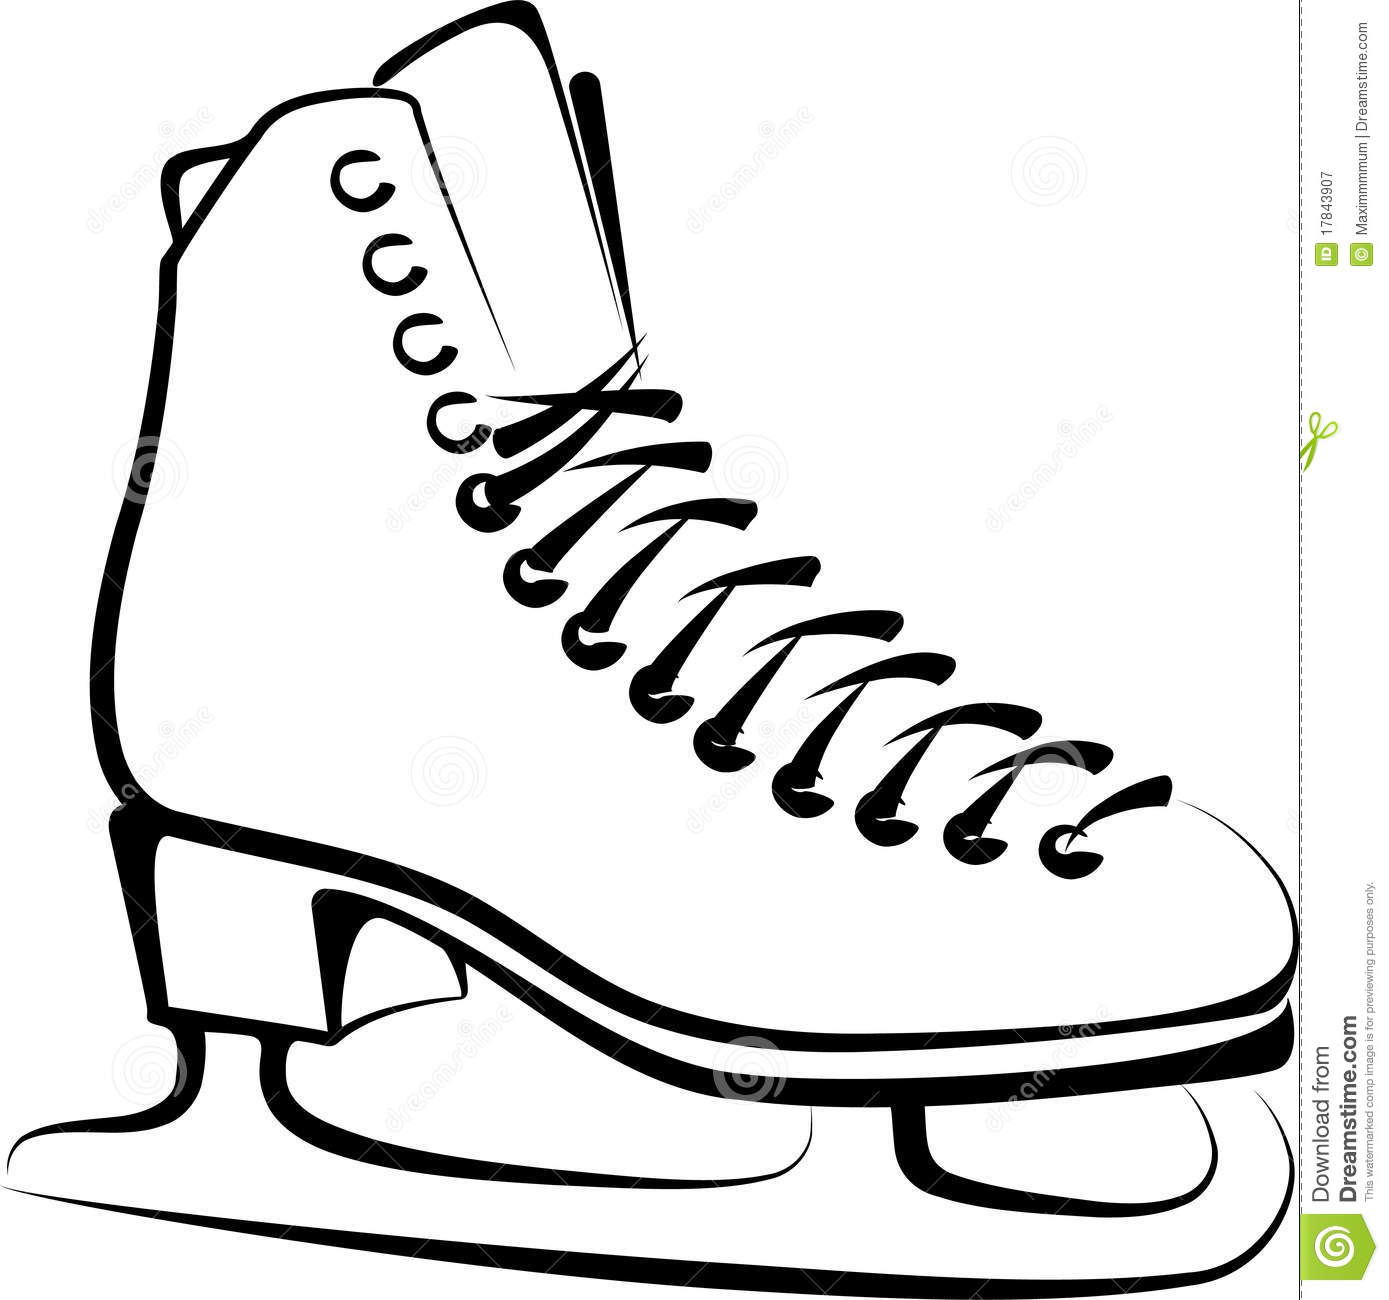 Figure skate clipart graphic royalty free library Ice Skate Pictures | Free download best Ice Skate Pictures on ... graphic royalty free library